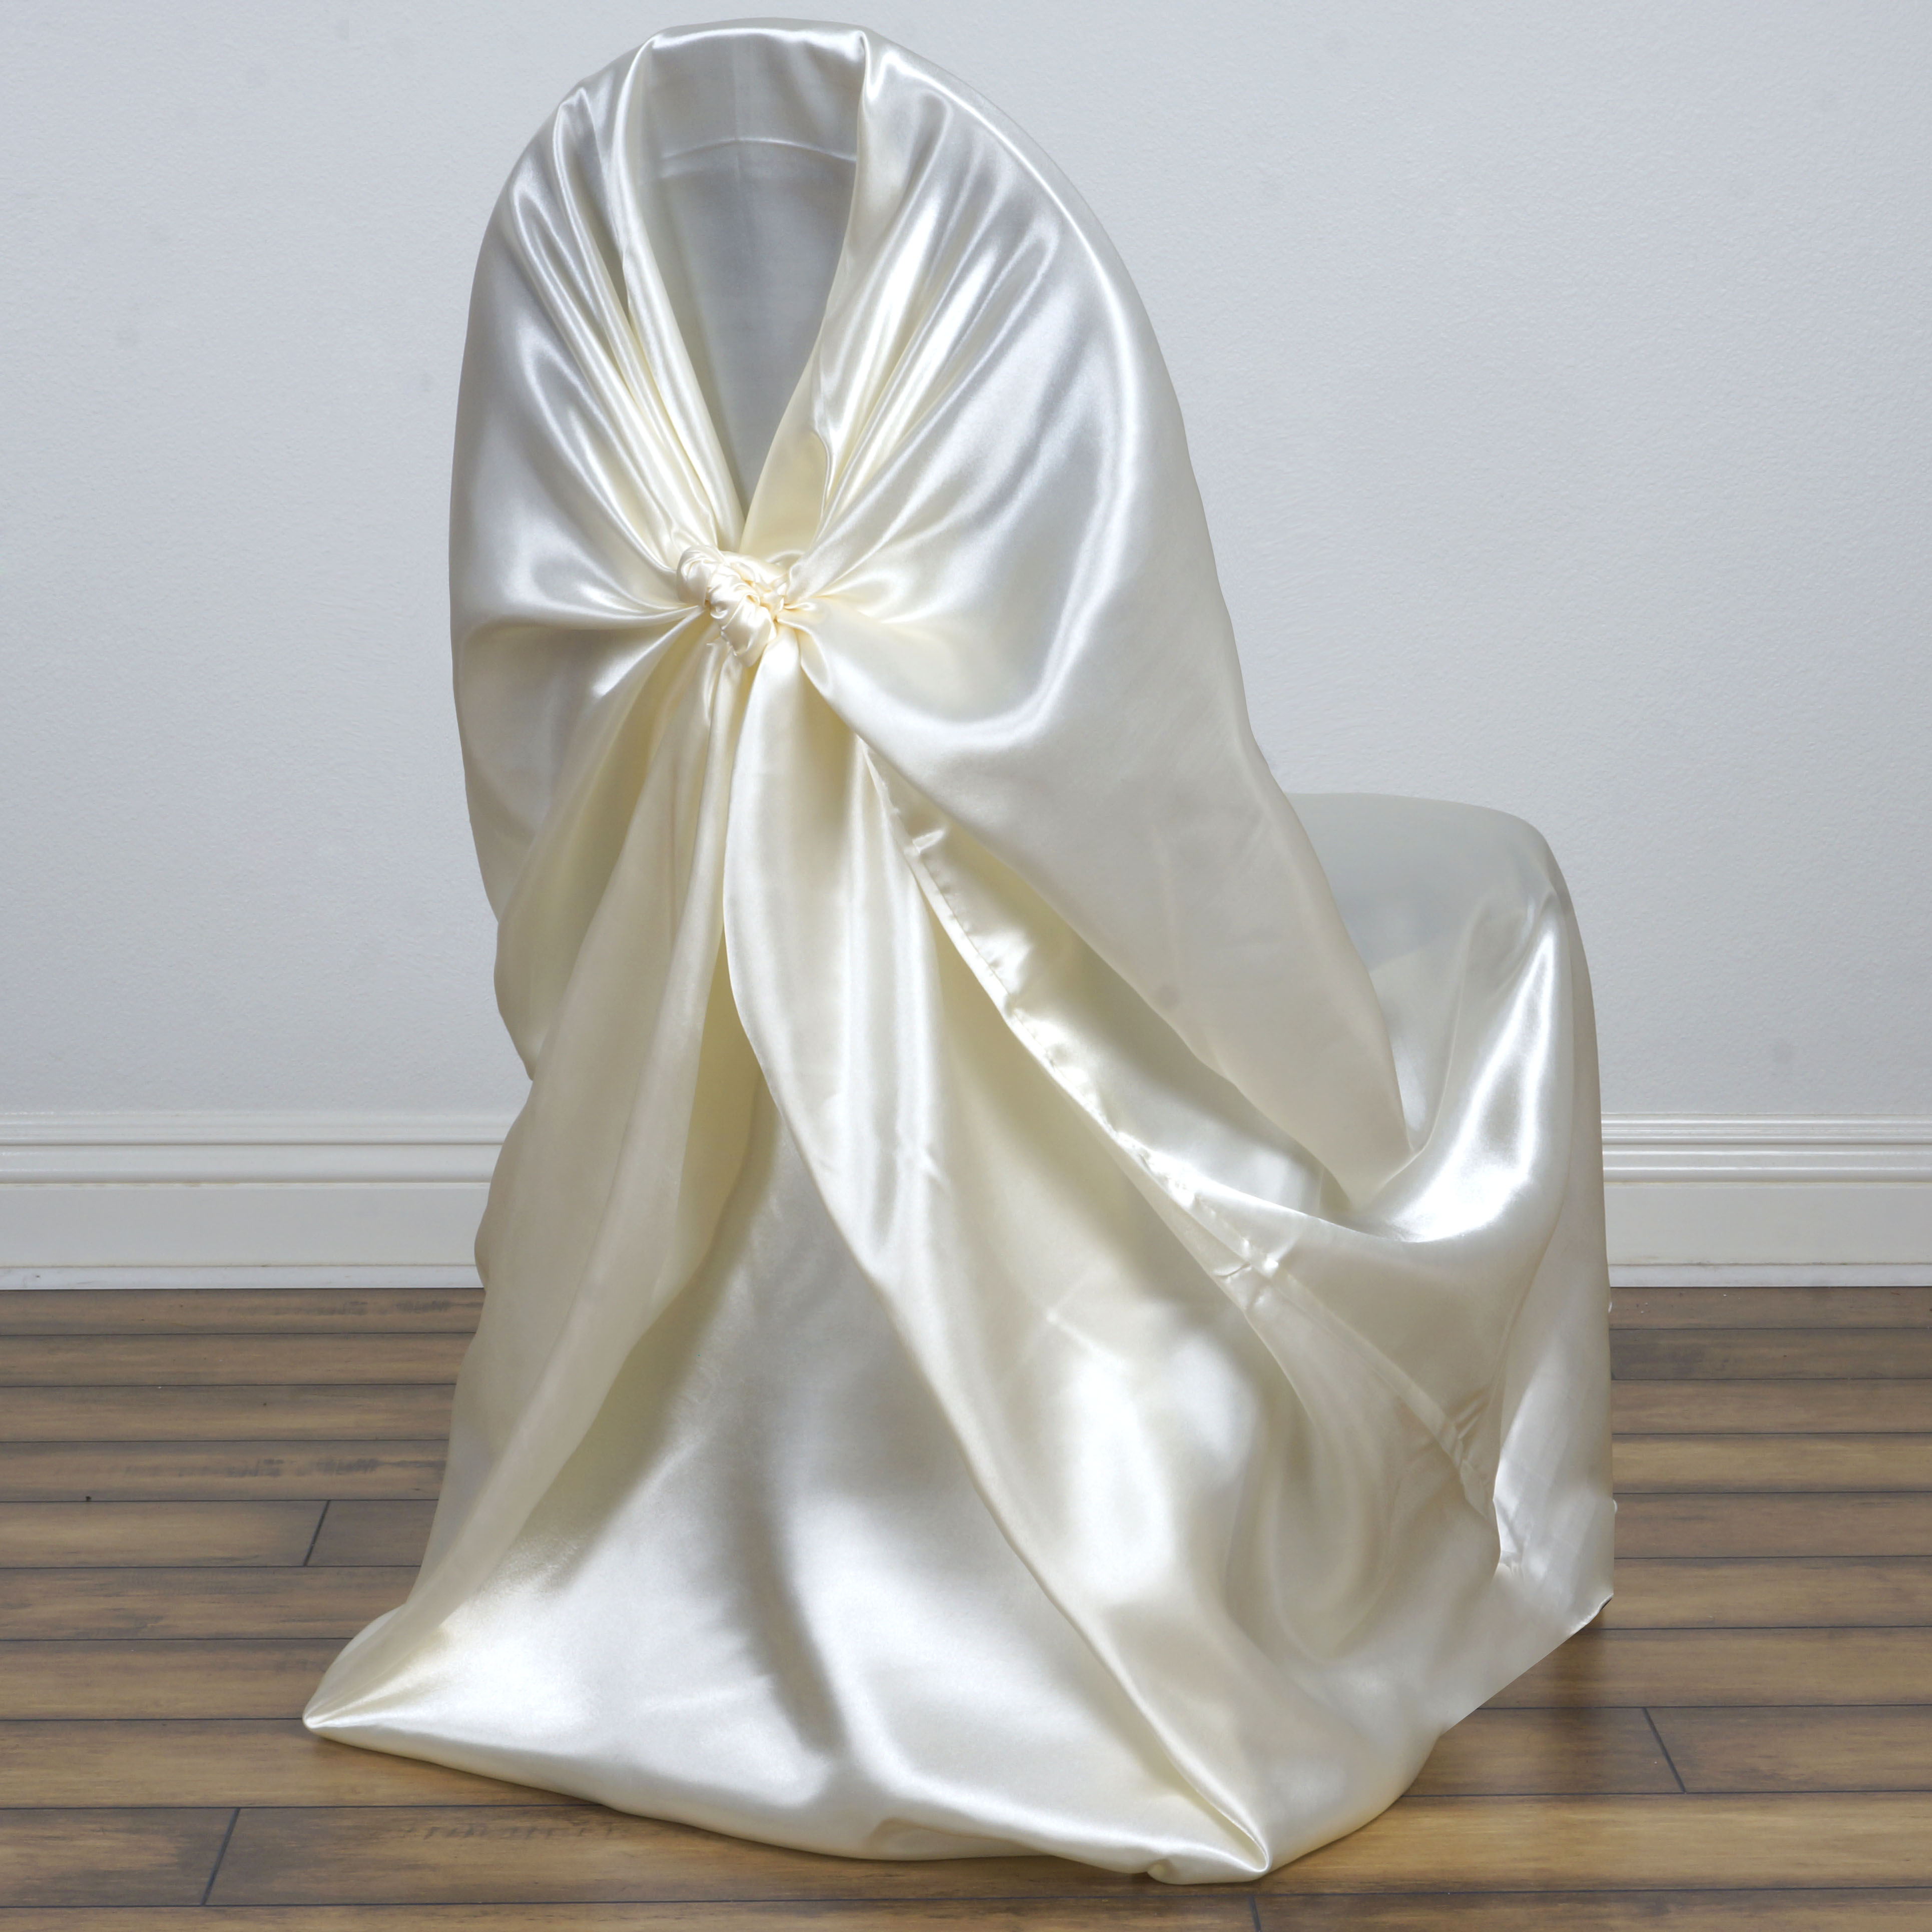 75 pcs SATIN UNIVERSAL CHAIR COVERS for all kinds of Chairs